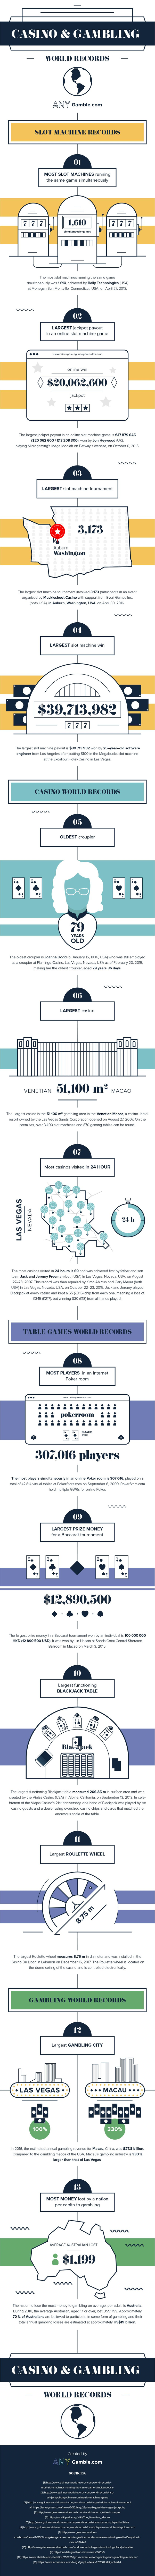 Casino and Gambling World Records by AnyGamble.com